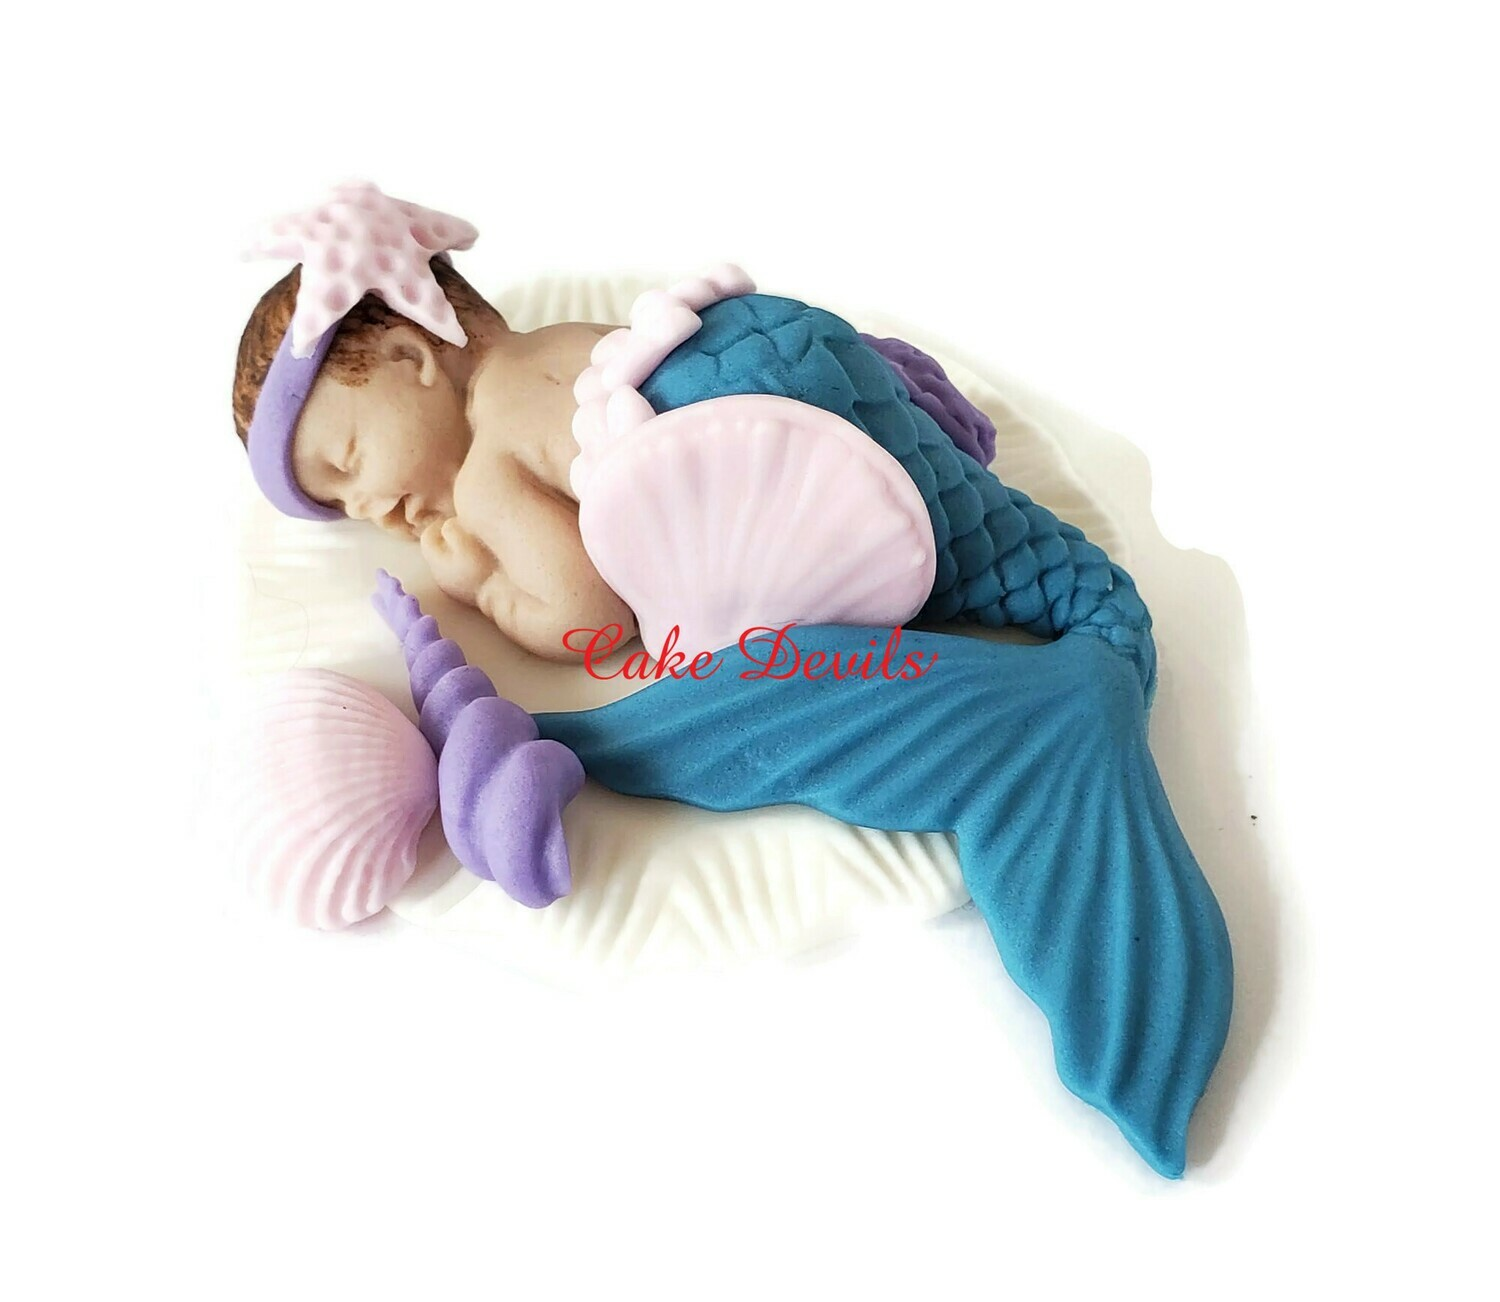 Mermaid Baby Shower Cake Topper, Fondant  Sleeping Baby mermaid with shells Cake Decoration